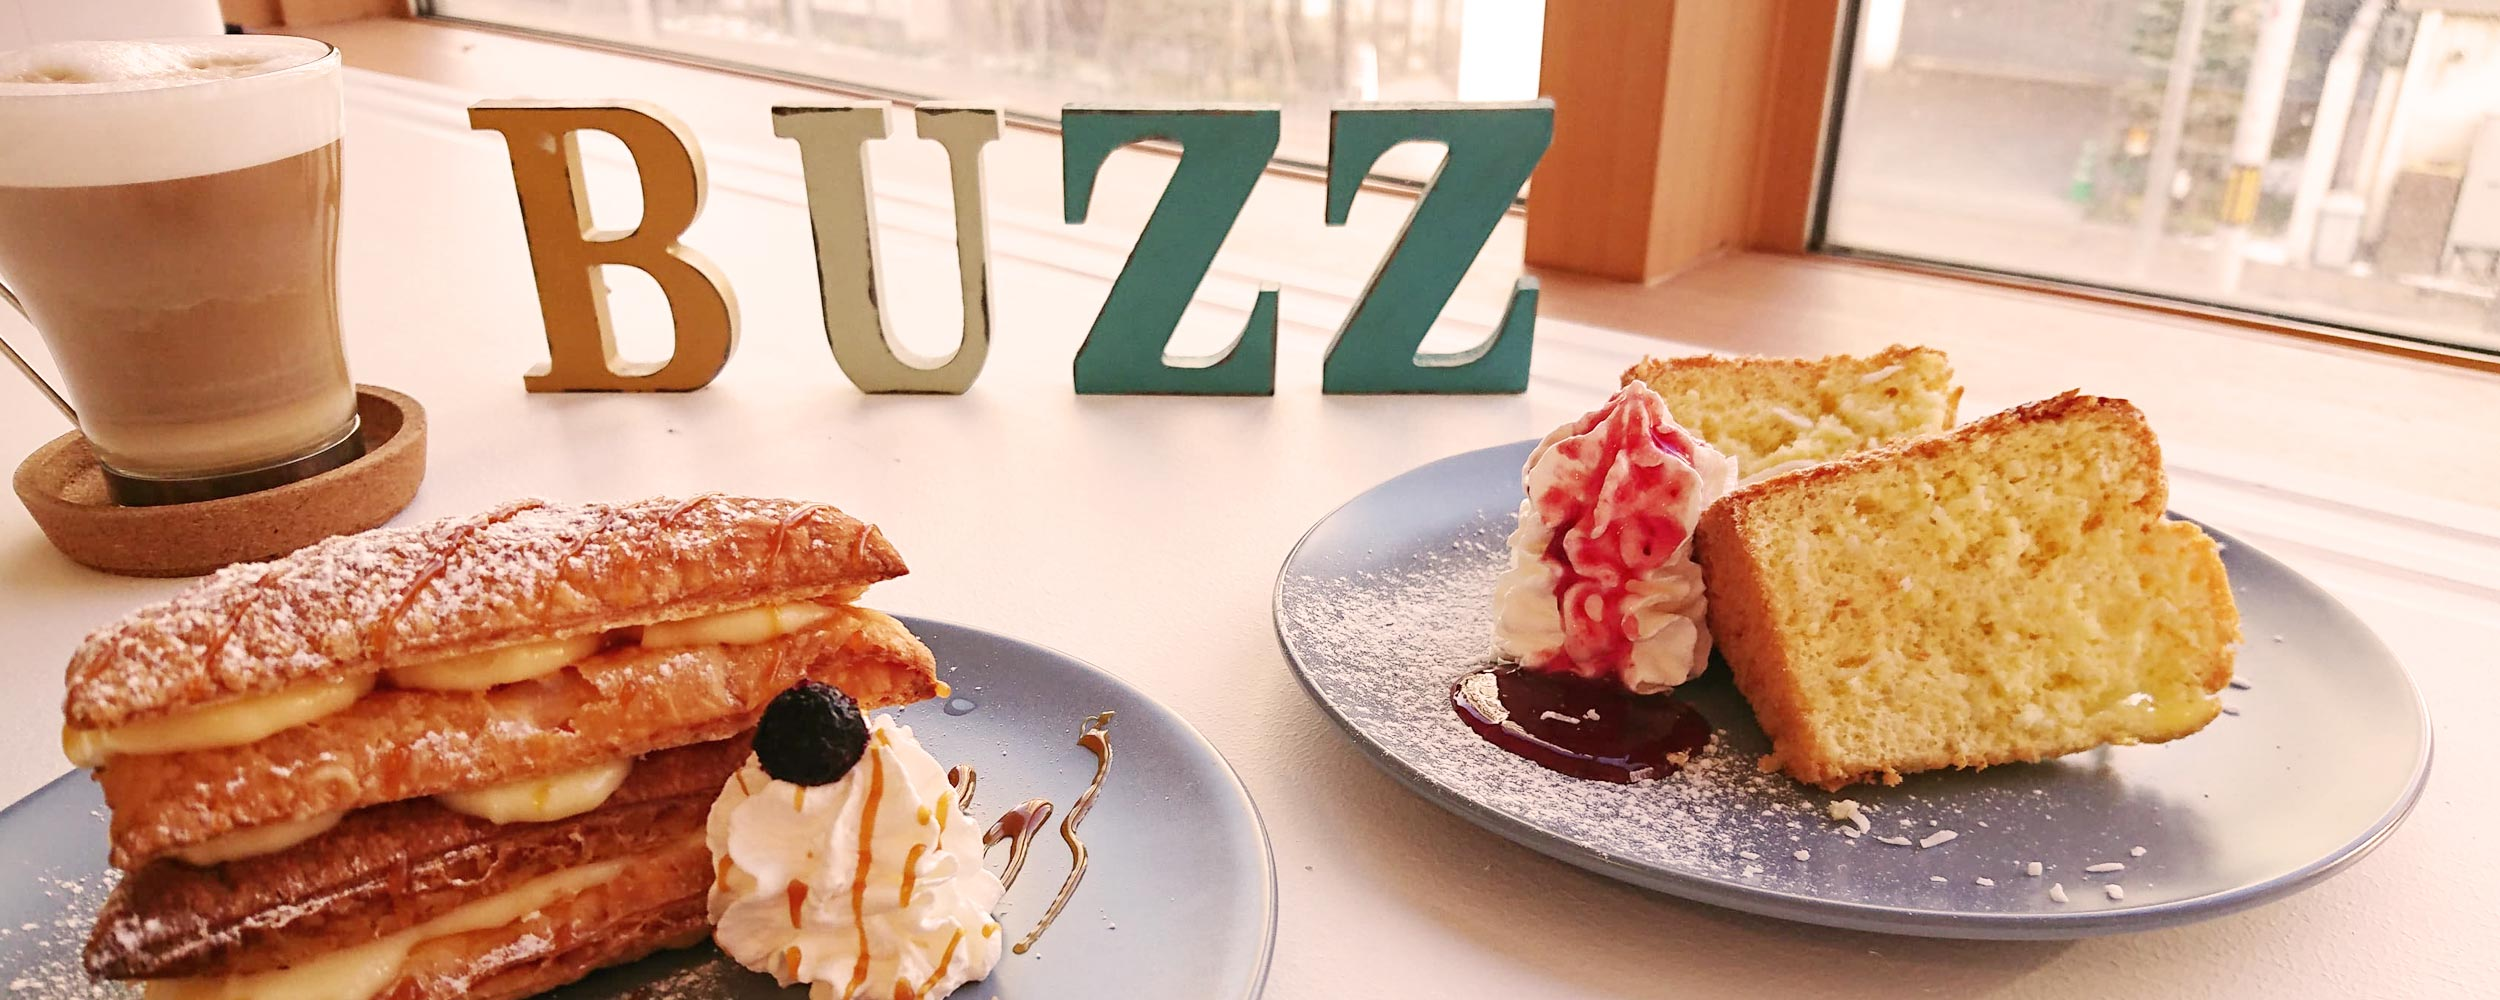 BUZZCAFE | 札幌キッズカフェ